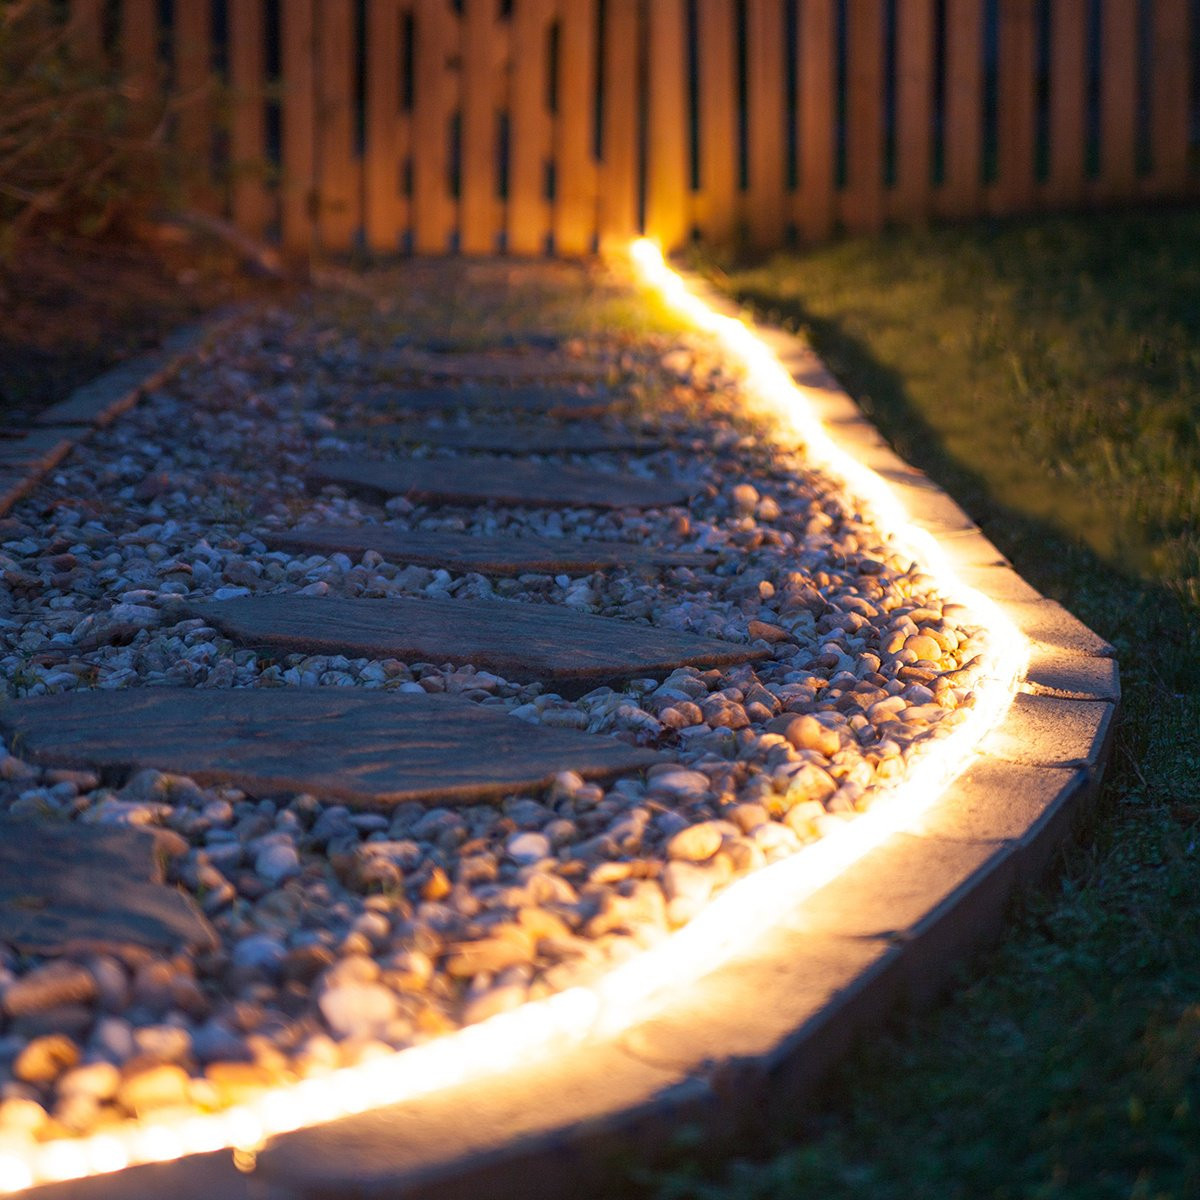 Solar rope lights outdoor decorations garden decorative light 100 solar rope lights outdoor decorations garden decorative light 100 pure white led ornaments deal of the day prime today sogrand landscape lighting waterproof workwithnaturefo